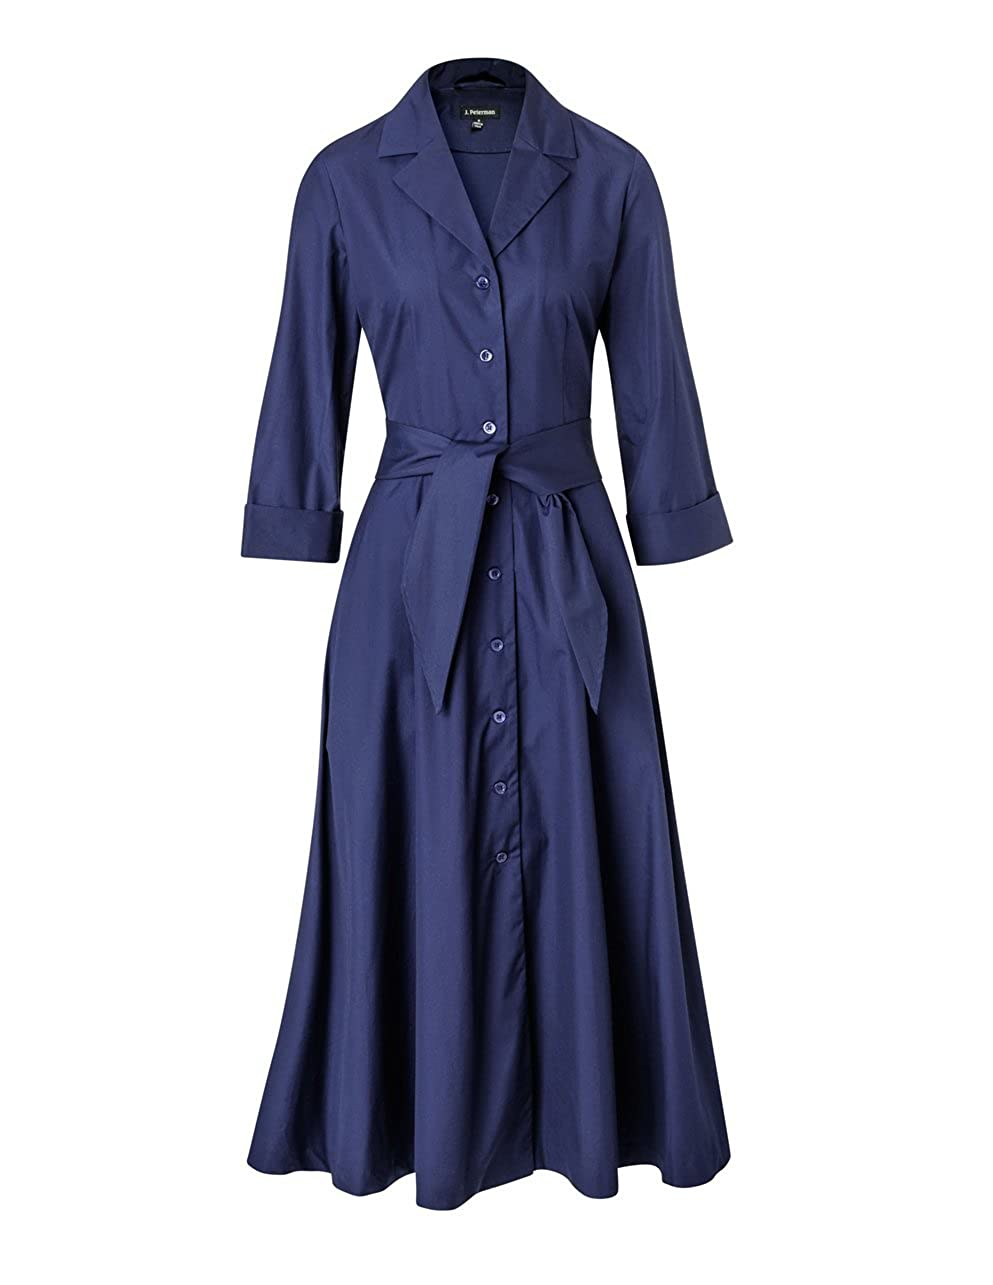 1940s Shirtwaist Dress History Long-Sleeve 1947 Dress $204.70 AT vintagedancer.com